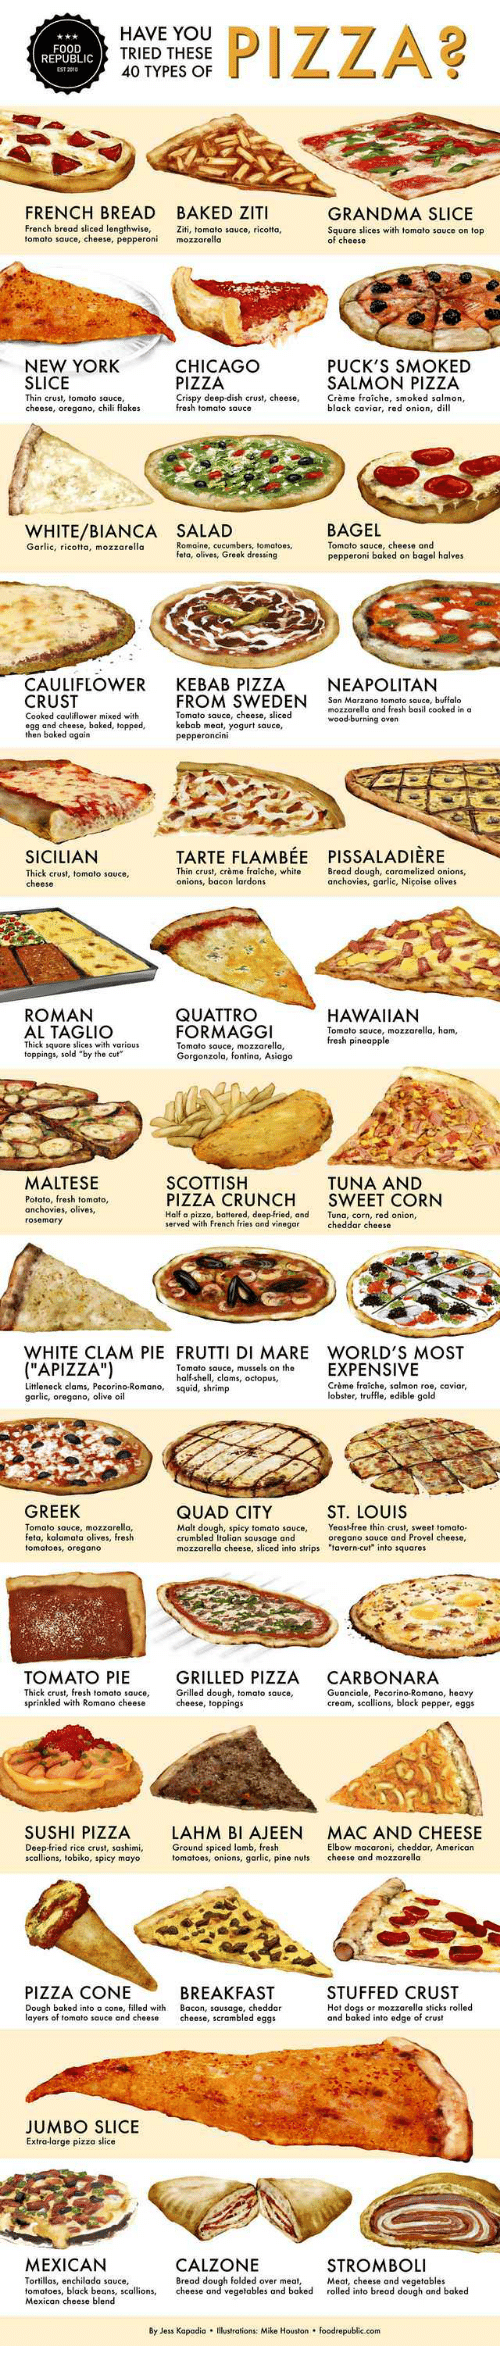 """Baked, Chicago, and Dogs: HAVE YOU  TRIED THESE  40 TYPES OF  A?  REPUBLIC  FRENCH BREAD BAKED ZITI  GRANDMA SLICE  Franch bread sliced lengthwise, Ziti, tomoto  tomato souce, cheese, pepperoni mozzarello  Square slices with tomato souce on top  of chees  CHICAGO  NEW YORK  SLICE  Thin crust, tomato sauce,  cheese, oregano, chili flakes  PIZZA  Crispy deep-dish crust, cheese, Creme fraiche, smoked salmon,  fresh tomato  PUCK'S SMOKED  SALMON PIZZA  k coviar, red onion, dill  WHITE/BIANCA SALAD  BAGEL  Tomato sauce, cheese and  Rongine, cucumbers, tongtoes,  feto, olives, Greek dressing  l halves  CAULIFLOWER KEBAB PIZZA NEAPOLITAN  CRUST  mozzarelle and fresh basil cooked ina  Cooked cauliflower mixed with  egg and cheese, boked, hopped,  Tomato souce, cheese, sliced  kebob meat, yogurt souce,  SICILIAN  Thick crust, tomato sauce,  cheese  TARTE FLAMBÉE PISSALADIERE  Thin crust, crème fraiche, white Bread dough, caramalized onions,  onions, bacon lardons  anchovies, garlic, Niçoise olives  QUATTRO  ROMAN  AL TAGLIO  Thick squore slices with various  toppings, sold """"by the cut  HAWAIIAN  Tomato sauce, mozzarella, ham,  fresh  FORMAGGI  Tomato  MALTESE  Potato, fresh tomato,  SCOTTISH  TUNA AND  PIZZA CRUNCH  Half o pizze, boftered, deepfried, and  served wath French fries and vinegor  SWEET CORN  Tuna, corn, red onion,  cheddar cheese  rosemary  WHITE CLAM PIE FRUTTI DI MARE WORLD'S MOST  (""""APIZZA"""")  Tomato sauce, mussen theEXPENSIVE  halfshell, clams, octopus,  Littleneck clams, Pecorino Remane, squid, shrimp  garlic, oregano, olive oil  Crème fraiche, salmon roe, caviar  lobster, truffle, edible gold  GREEK  QUAD CITY  ST. LOUIS  Tomato  feto, kalamata olives, fresh  Male dough, spicy tomato souce, Yeast-free thin crust, sweet tomato  crumbled ltalian sausage and  mozzarella cheese, sliced into strips """"lavern-cuf"""" into squores  oregono souce and Provel cheese,  TOMATO PIE  GRILLED PIZZA CARBONARA  Thick crust, fresh tomato sauce,Griled dough, tomato souce,  sprinkl"""